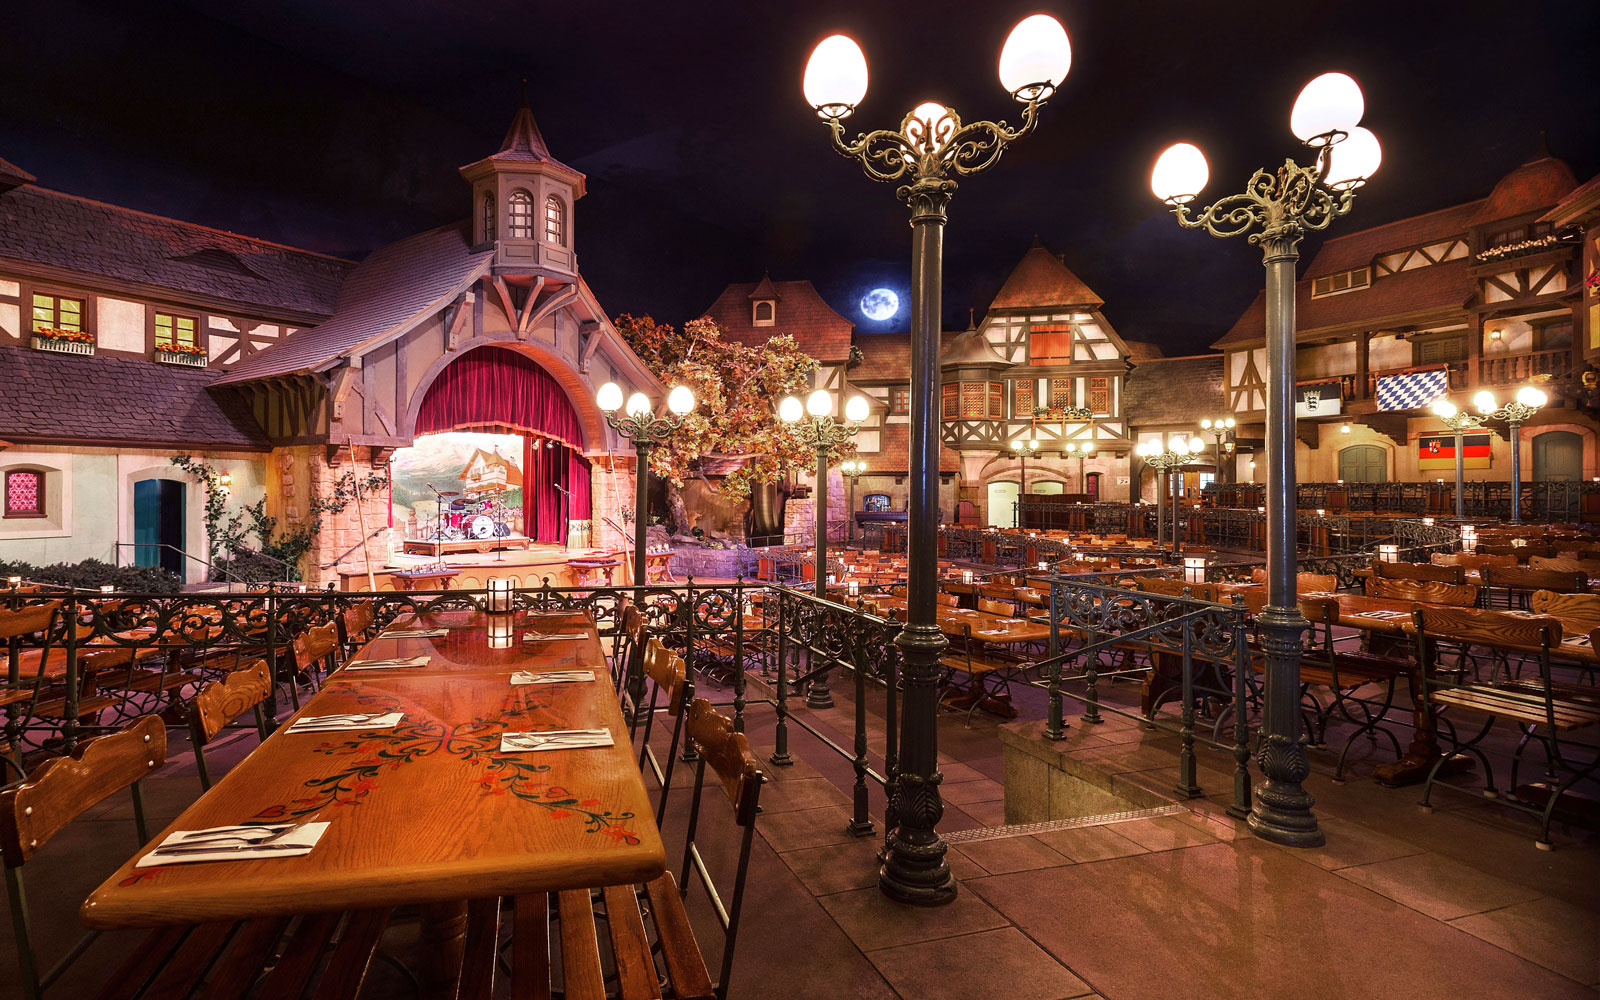 Biergarten at Epcot in Disney World, FL